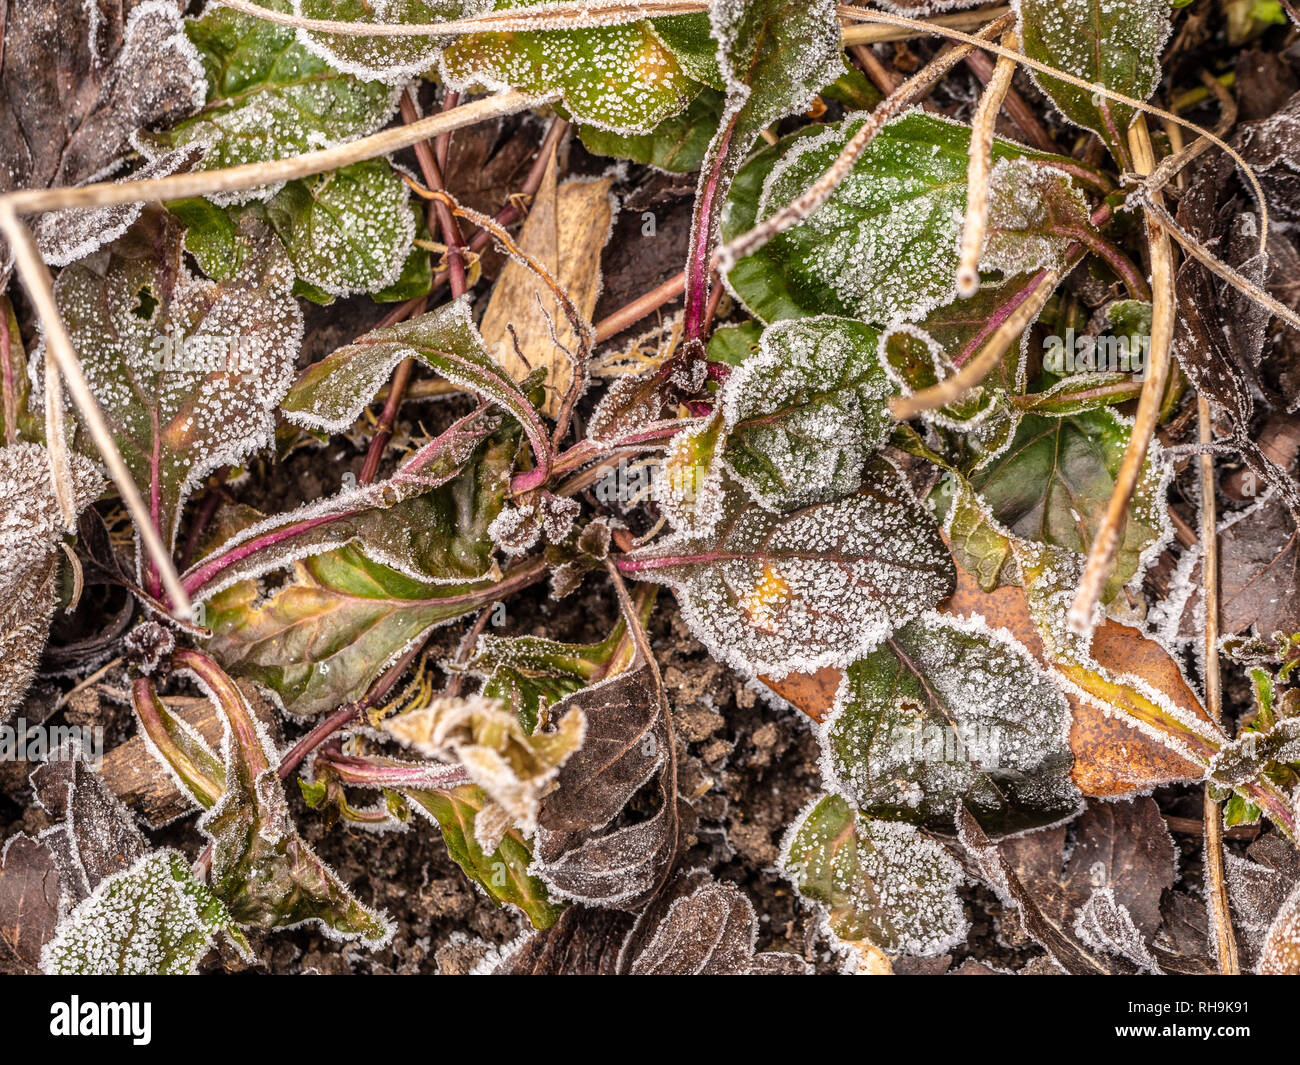 Frozen Bergenia Cordifolia leaves. - Stock Image